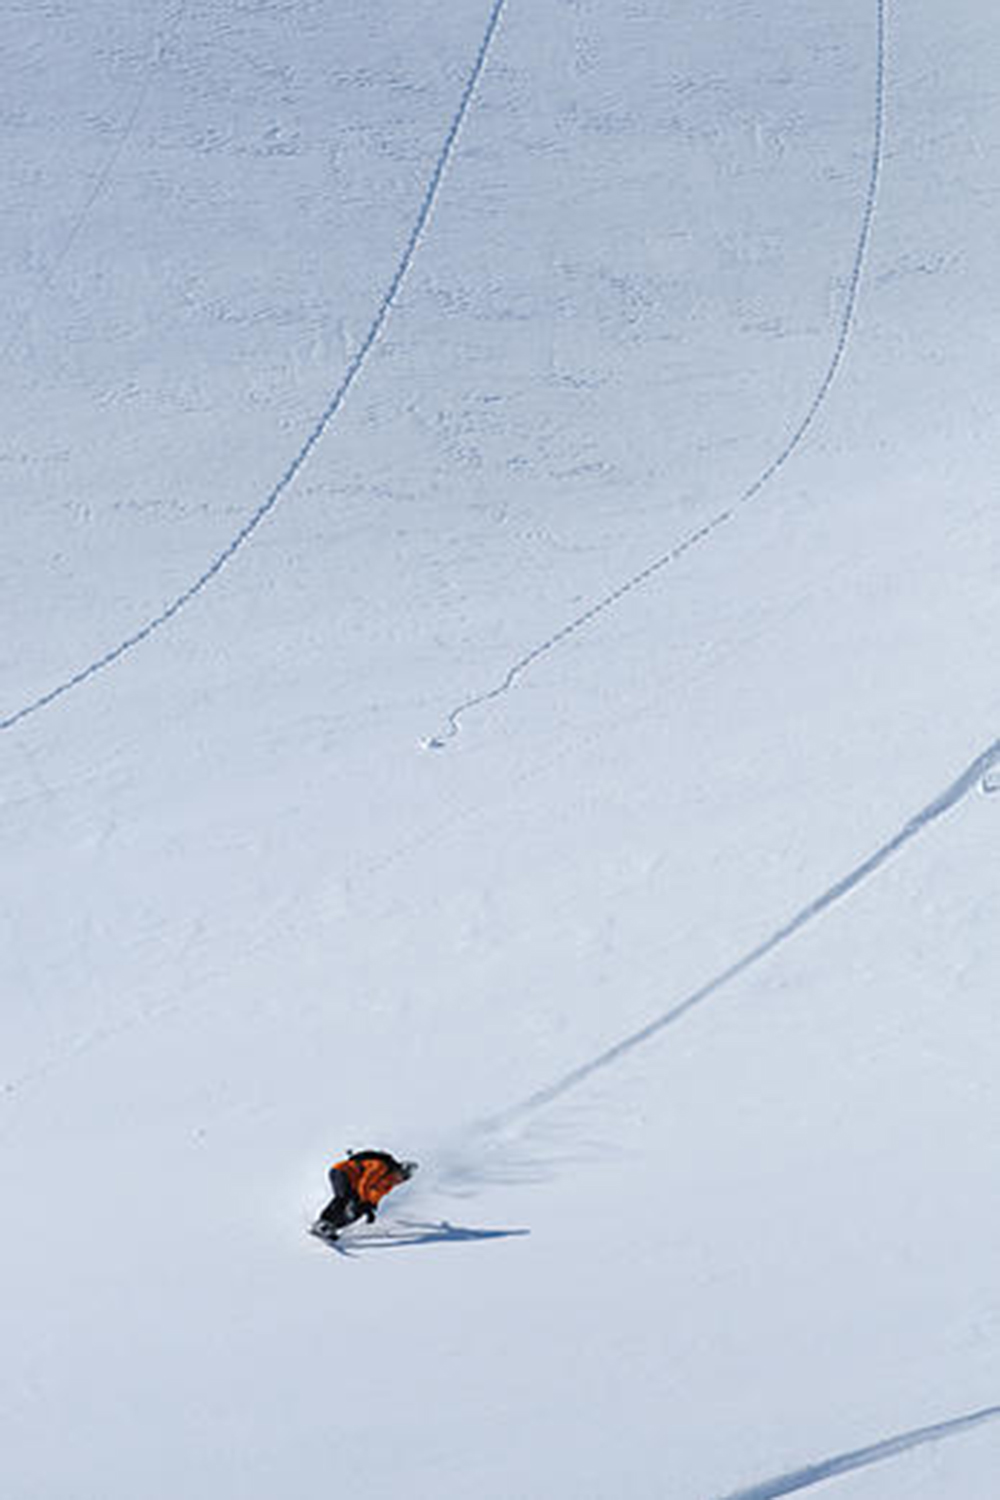 Tim Emmett - Total Heliski Legend